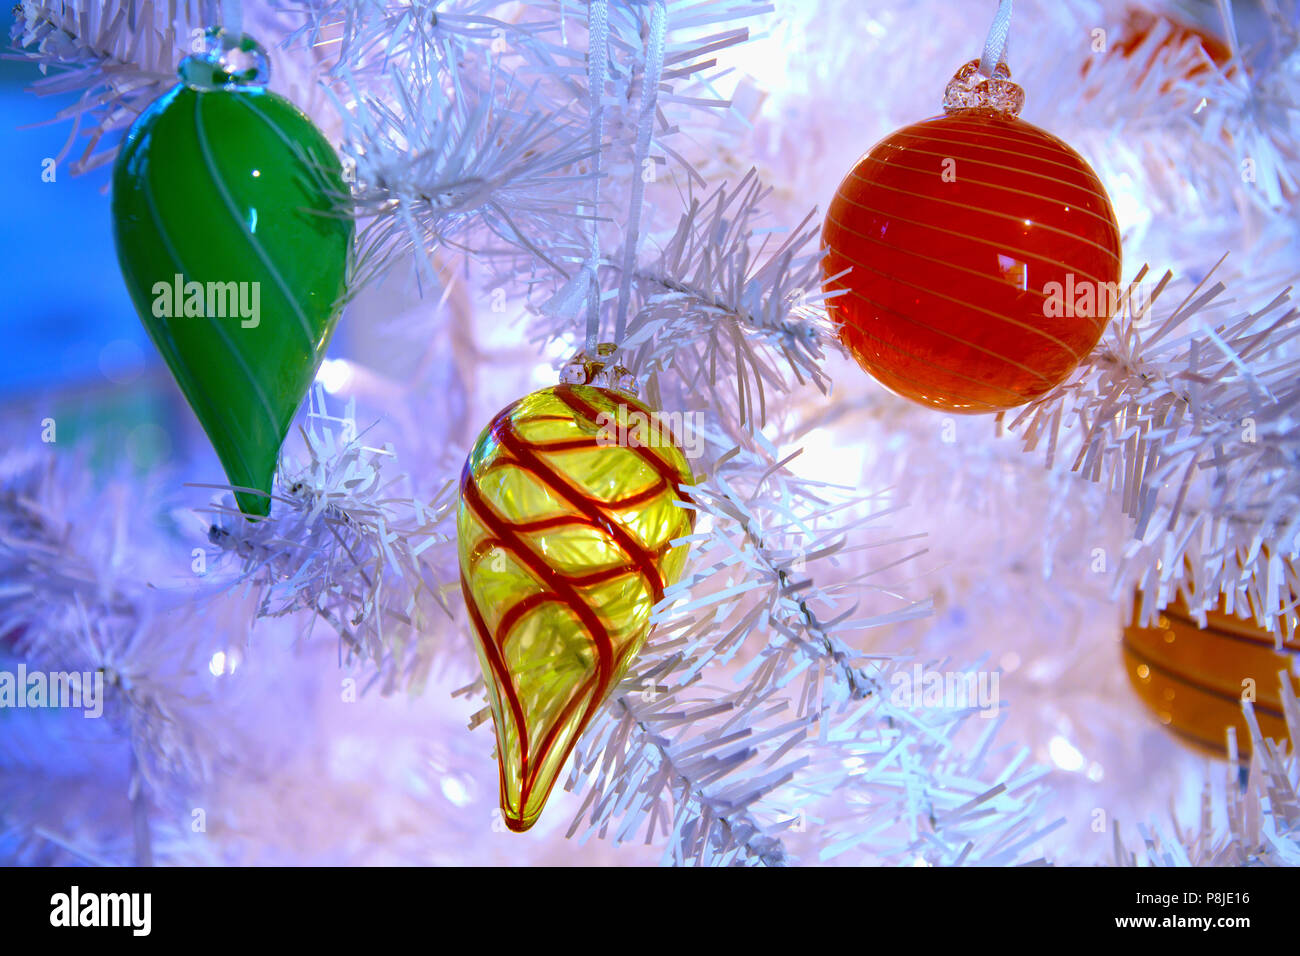 blown glass decorations hanging on a white christmas tree with twinkle lights strung throughout